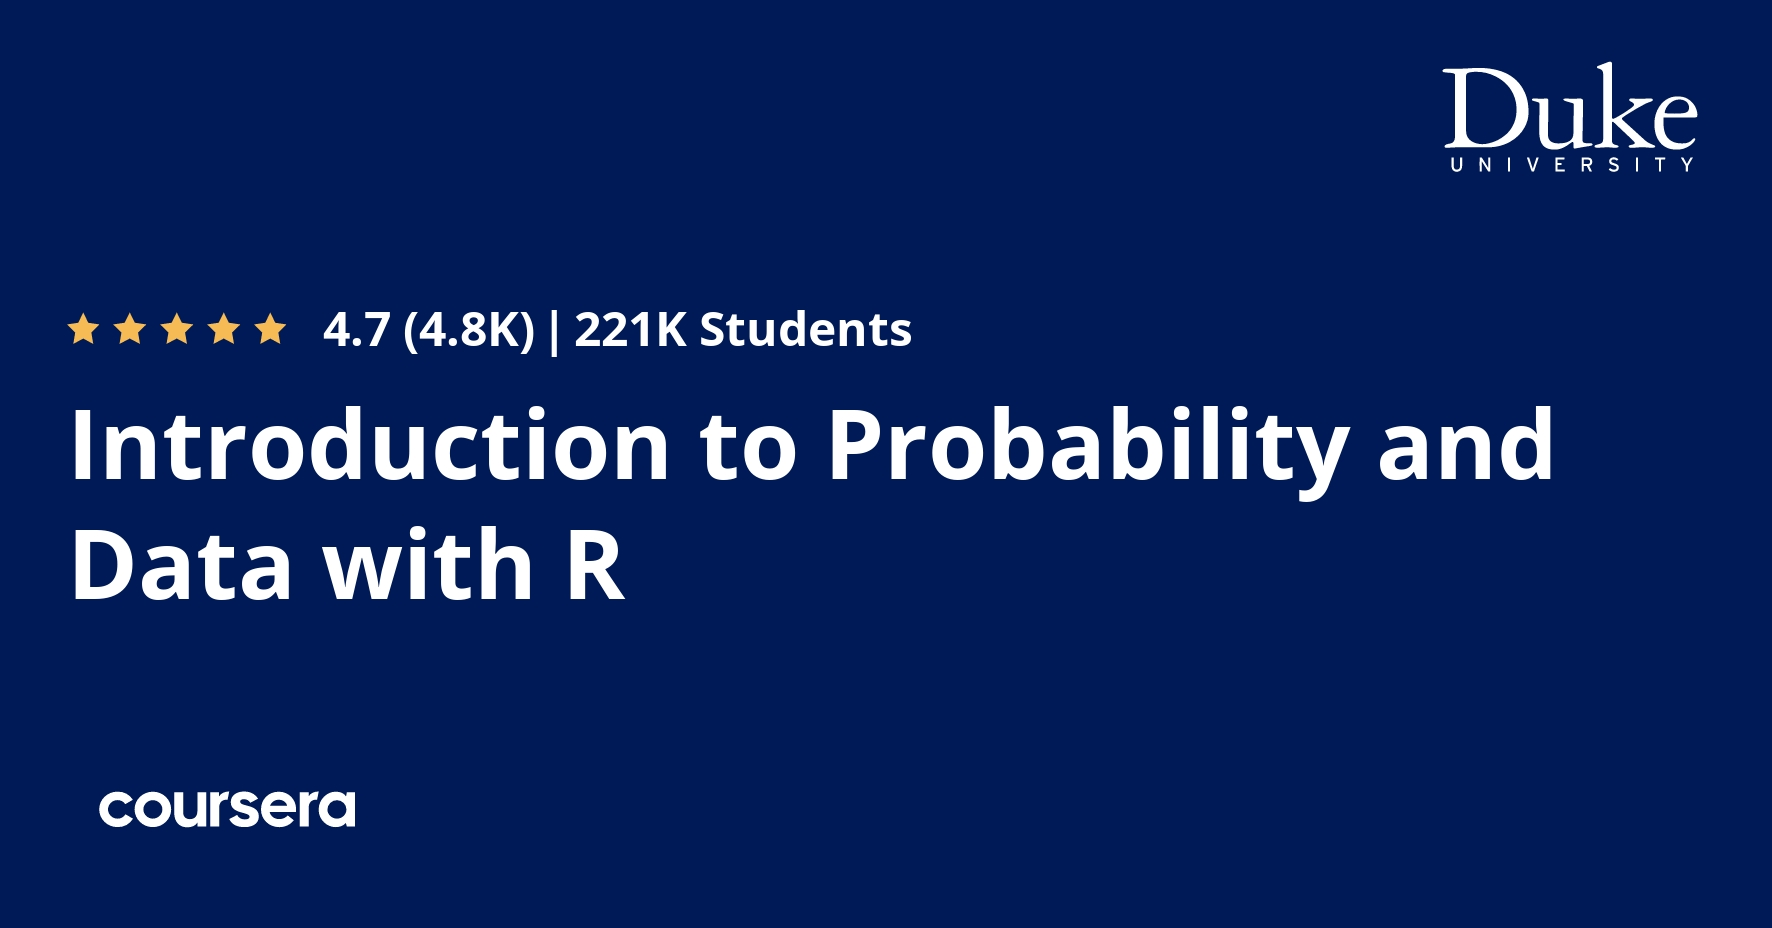 Introduction to Probability and Data with R